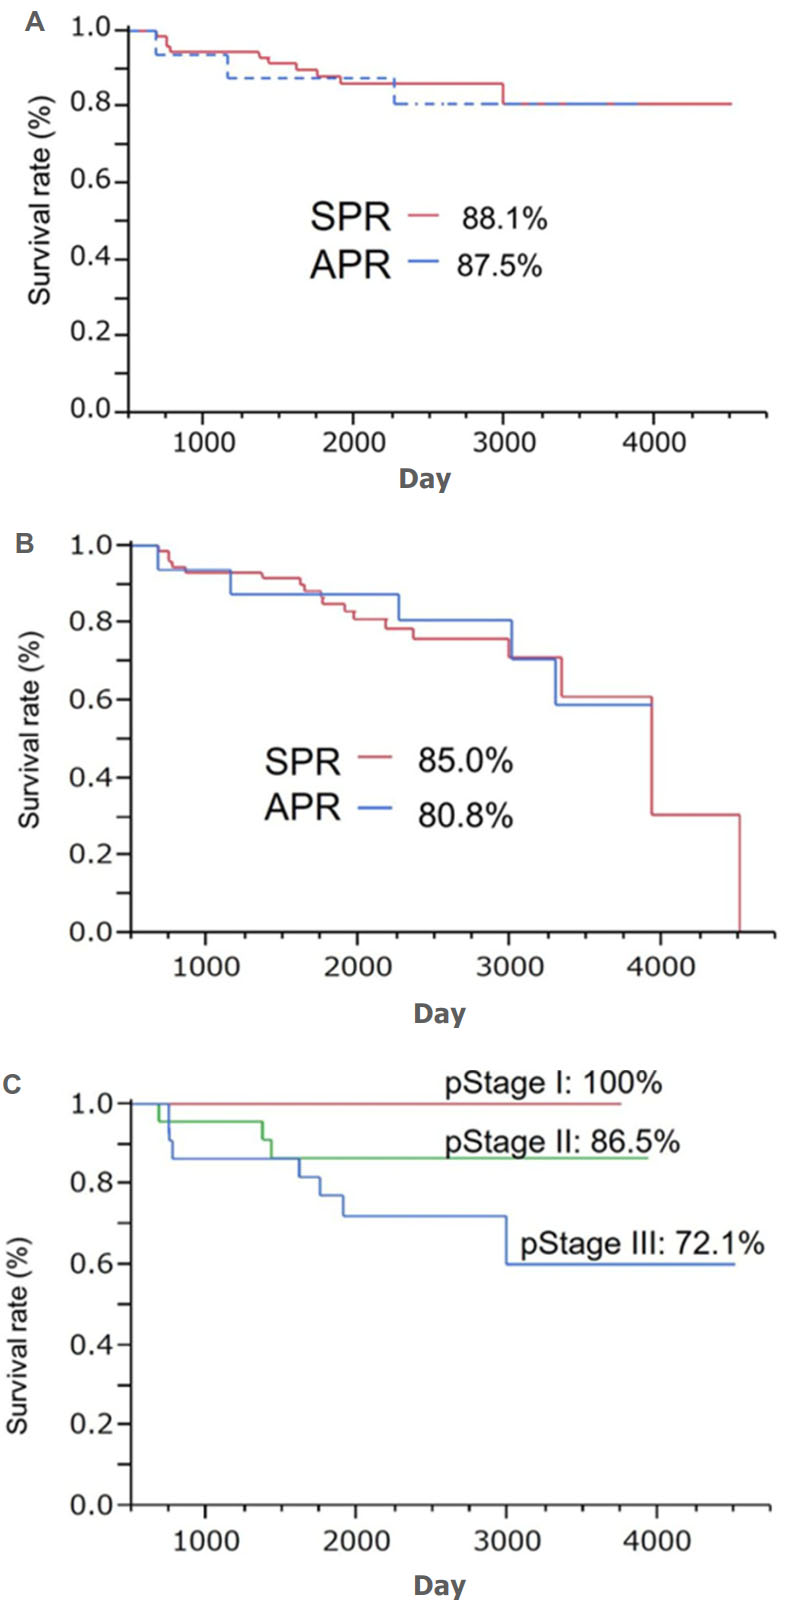 medium resolution of kaplan meier survival rate in the sphincter preserving resection and abdominoperineal resection groups a overall survival rate b disease free survival